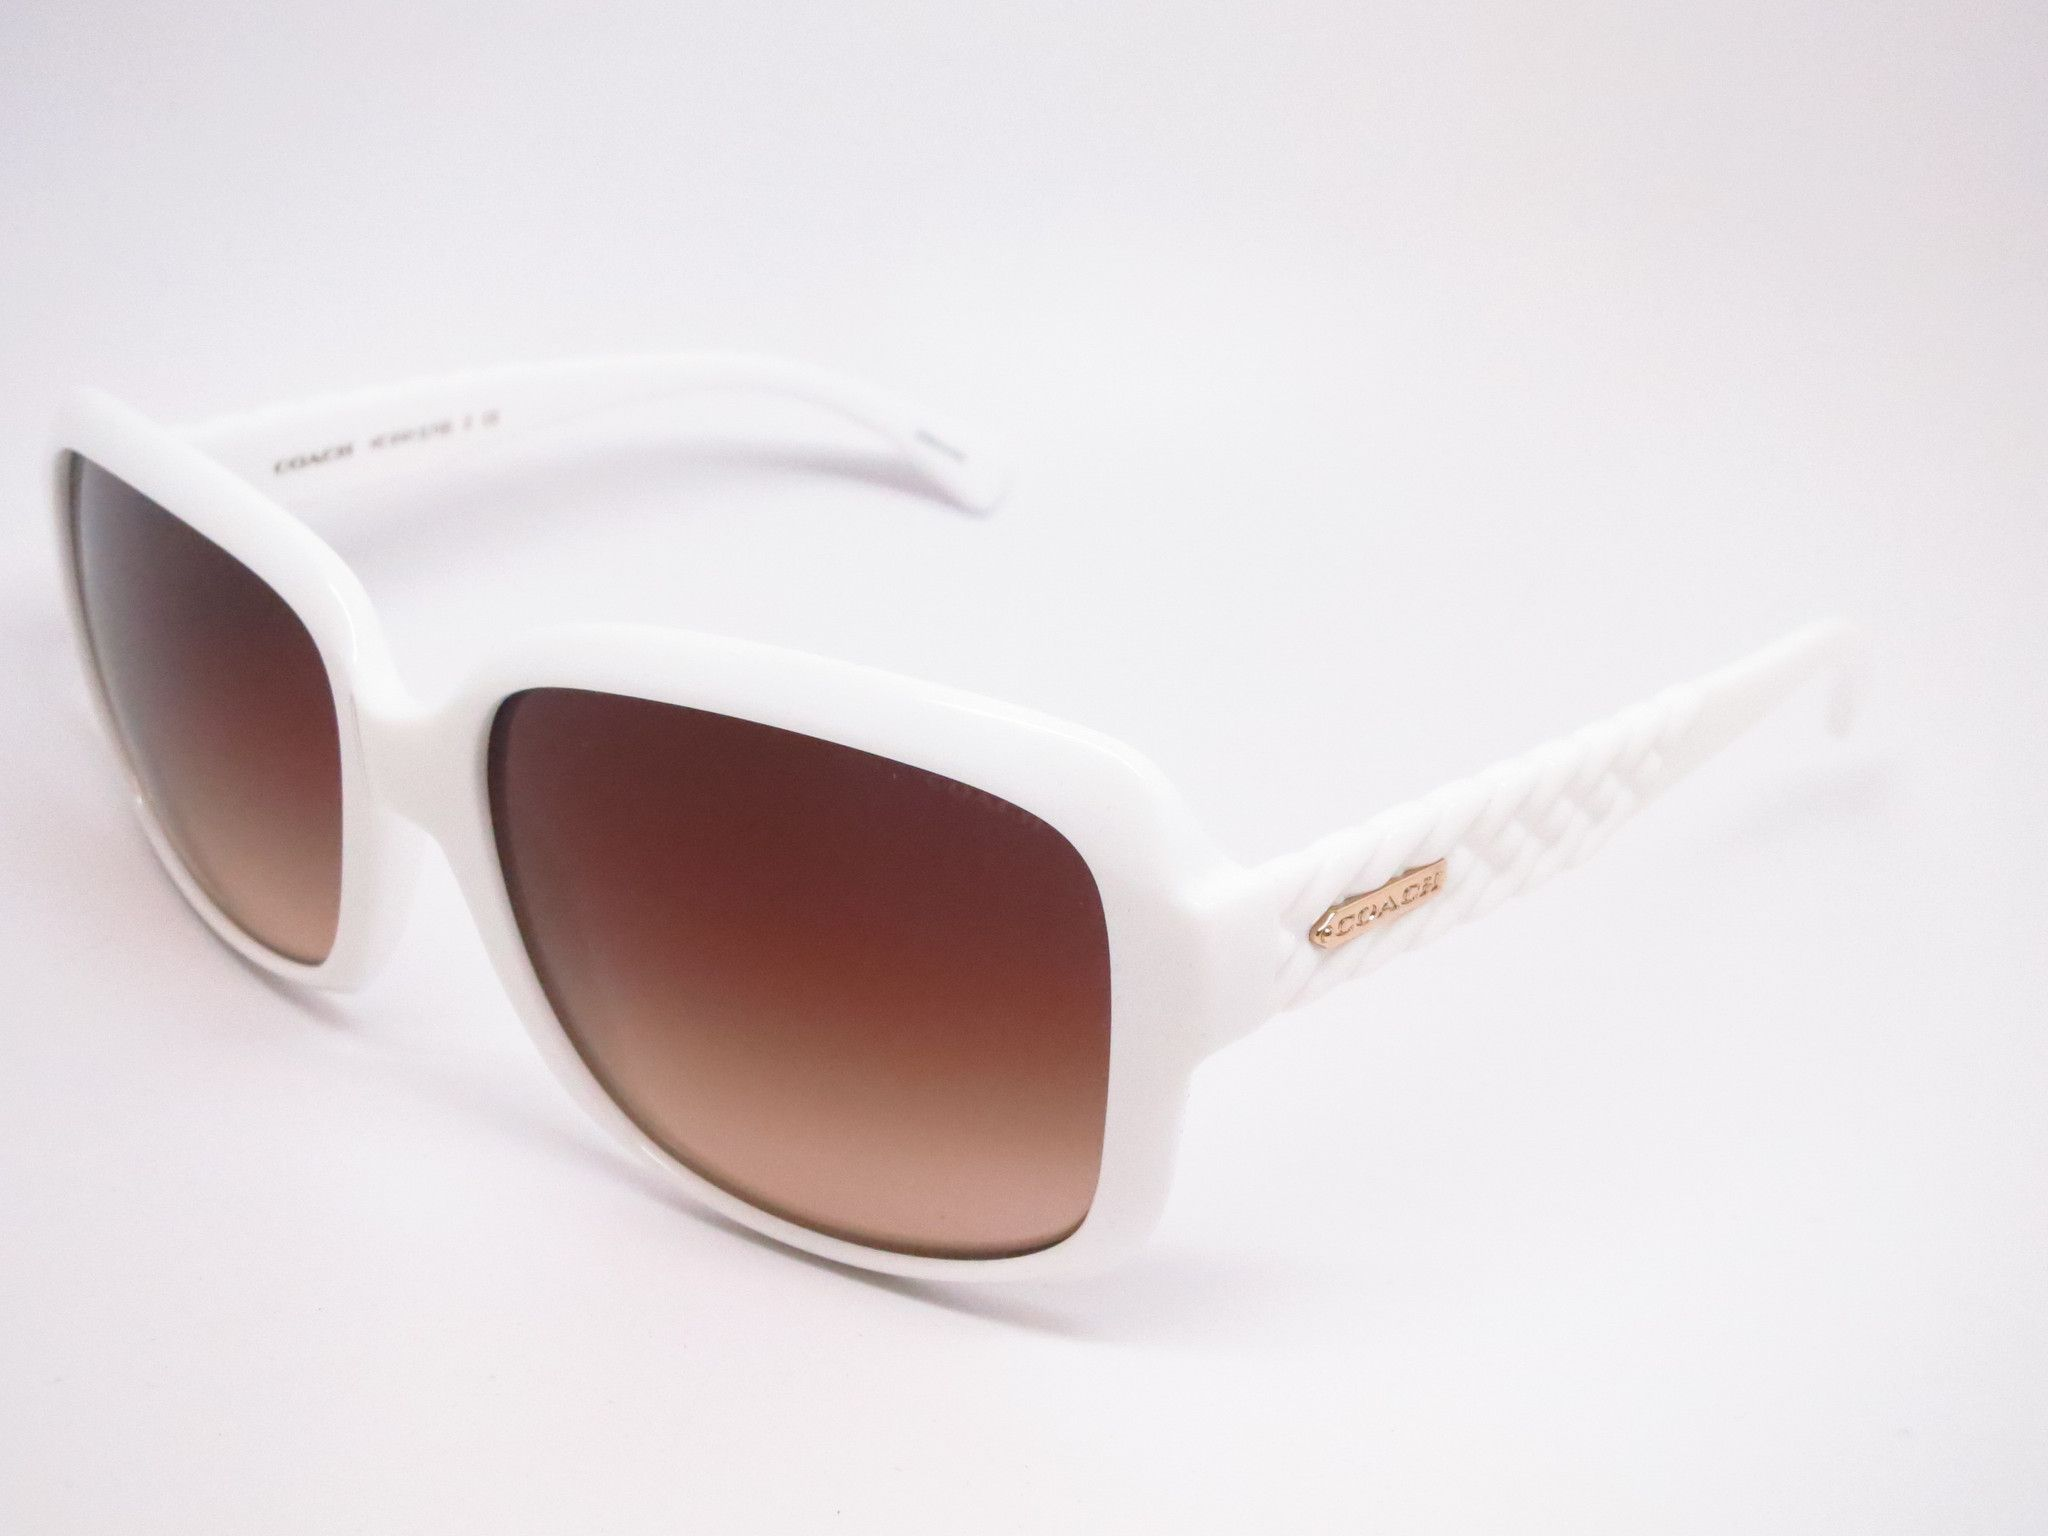 761301805bc2 ... White Lens Color : Dark Brown Gradient Polarized : No Gender : Womens  Size : 57mm-16mm-135mm Origin : Made in. Coach HC 8141 5199/13 White  Sunglasses ...